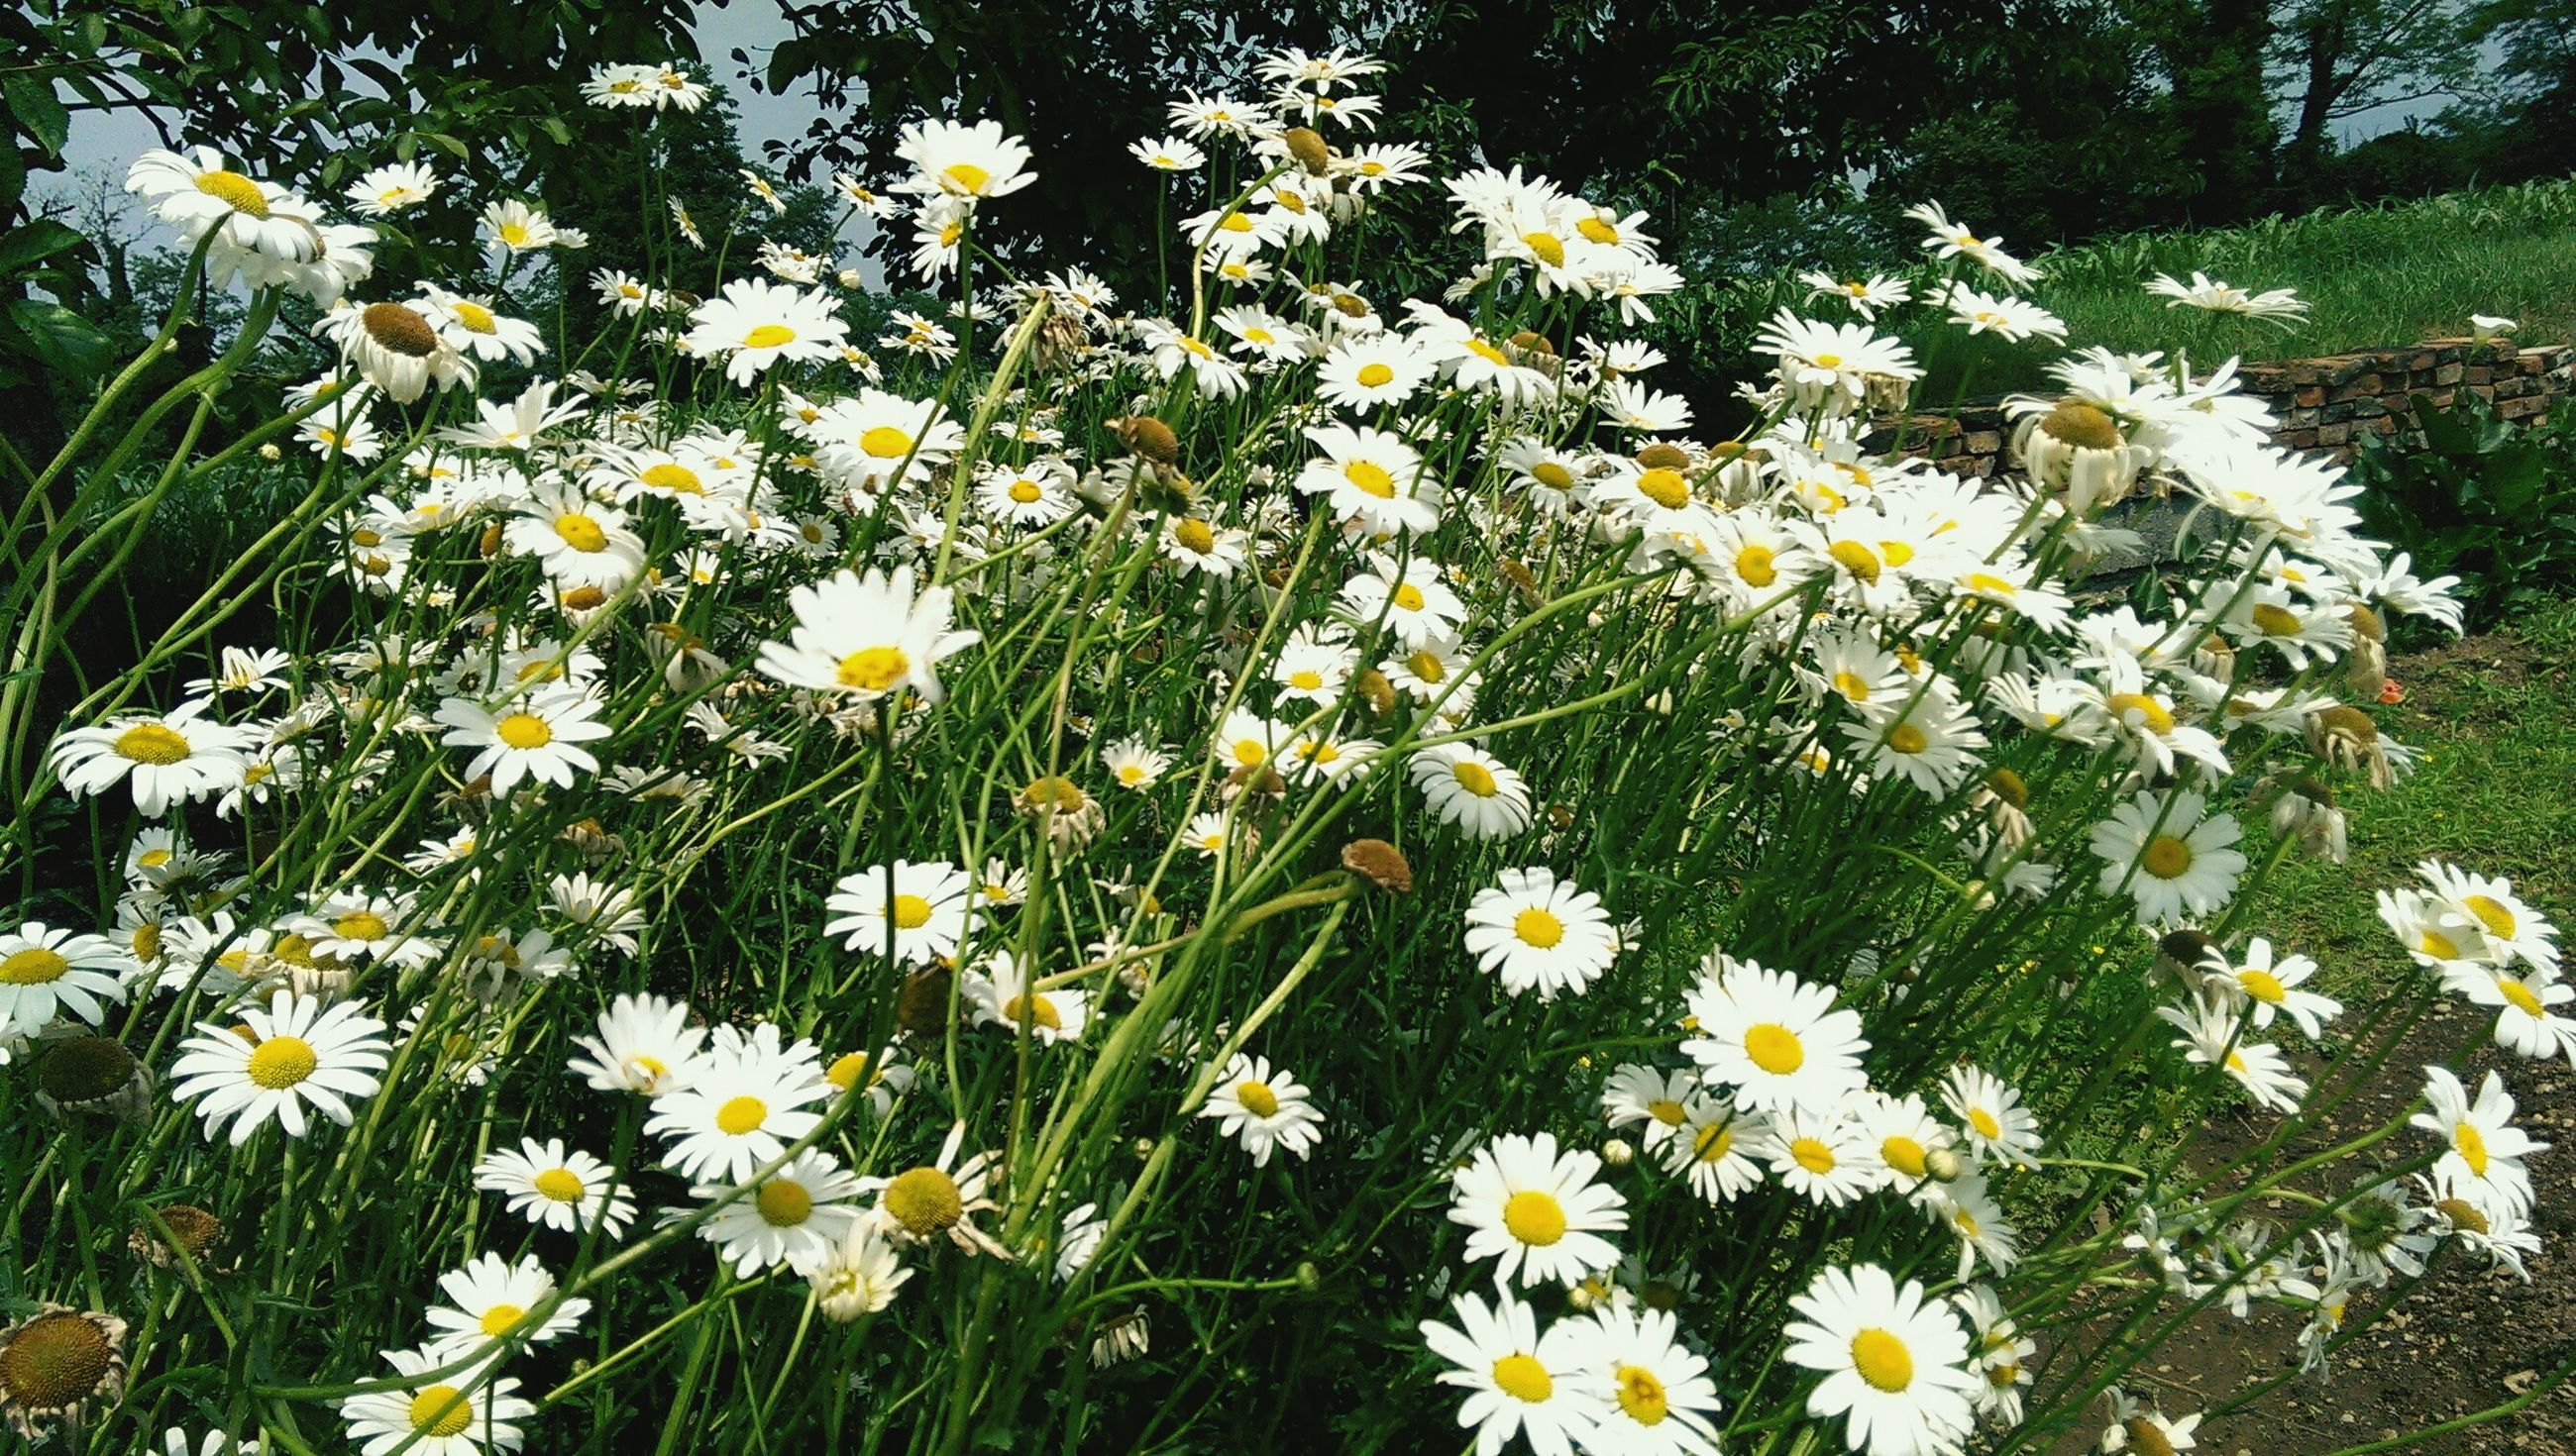 flower, freshness, fragility, petal, growth, daisy, white color, beauty in nature, flower head, blooming, yellow, plant, nature, field, high angle view, in bloom, wildflower, blossom, stem, pollen